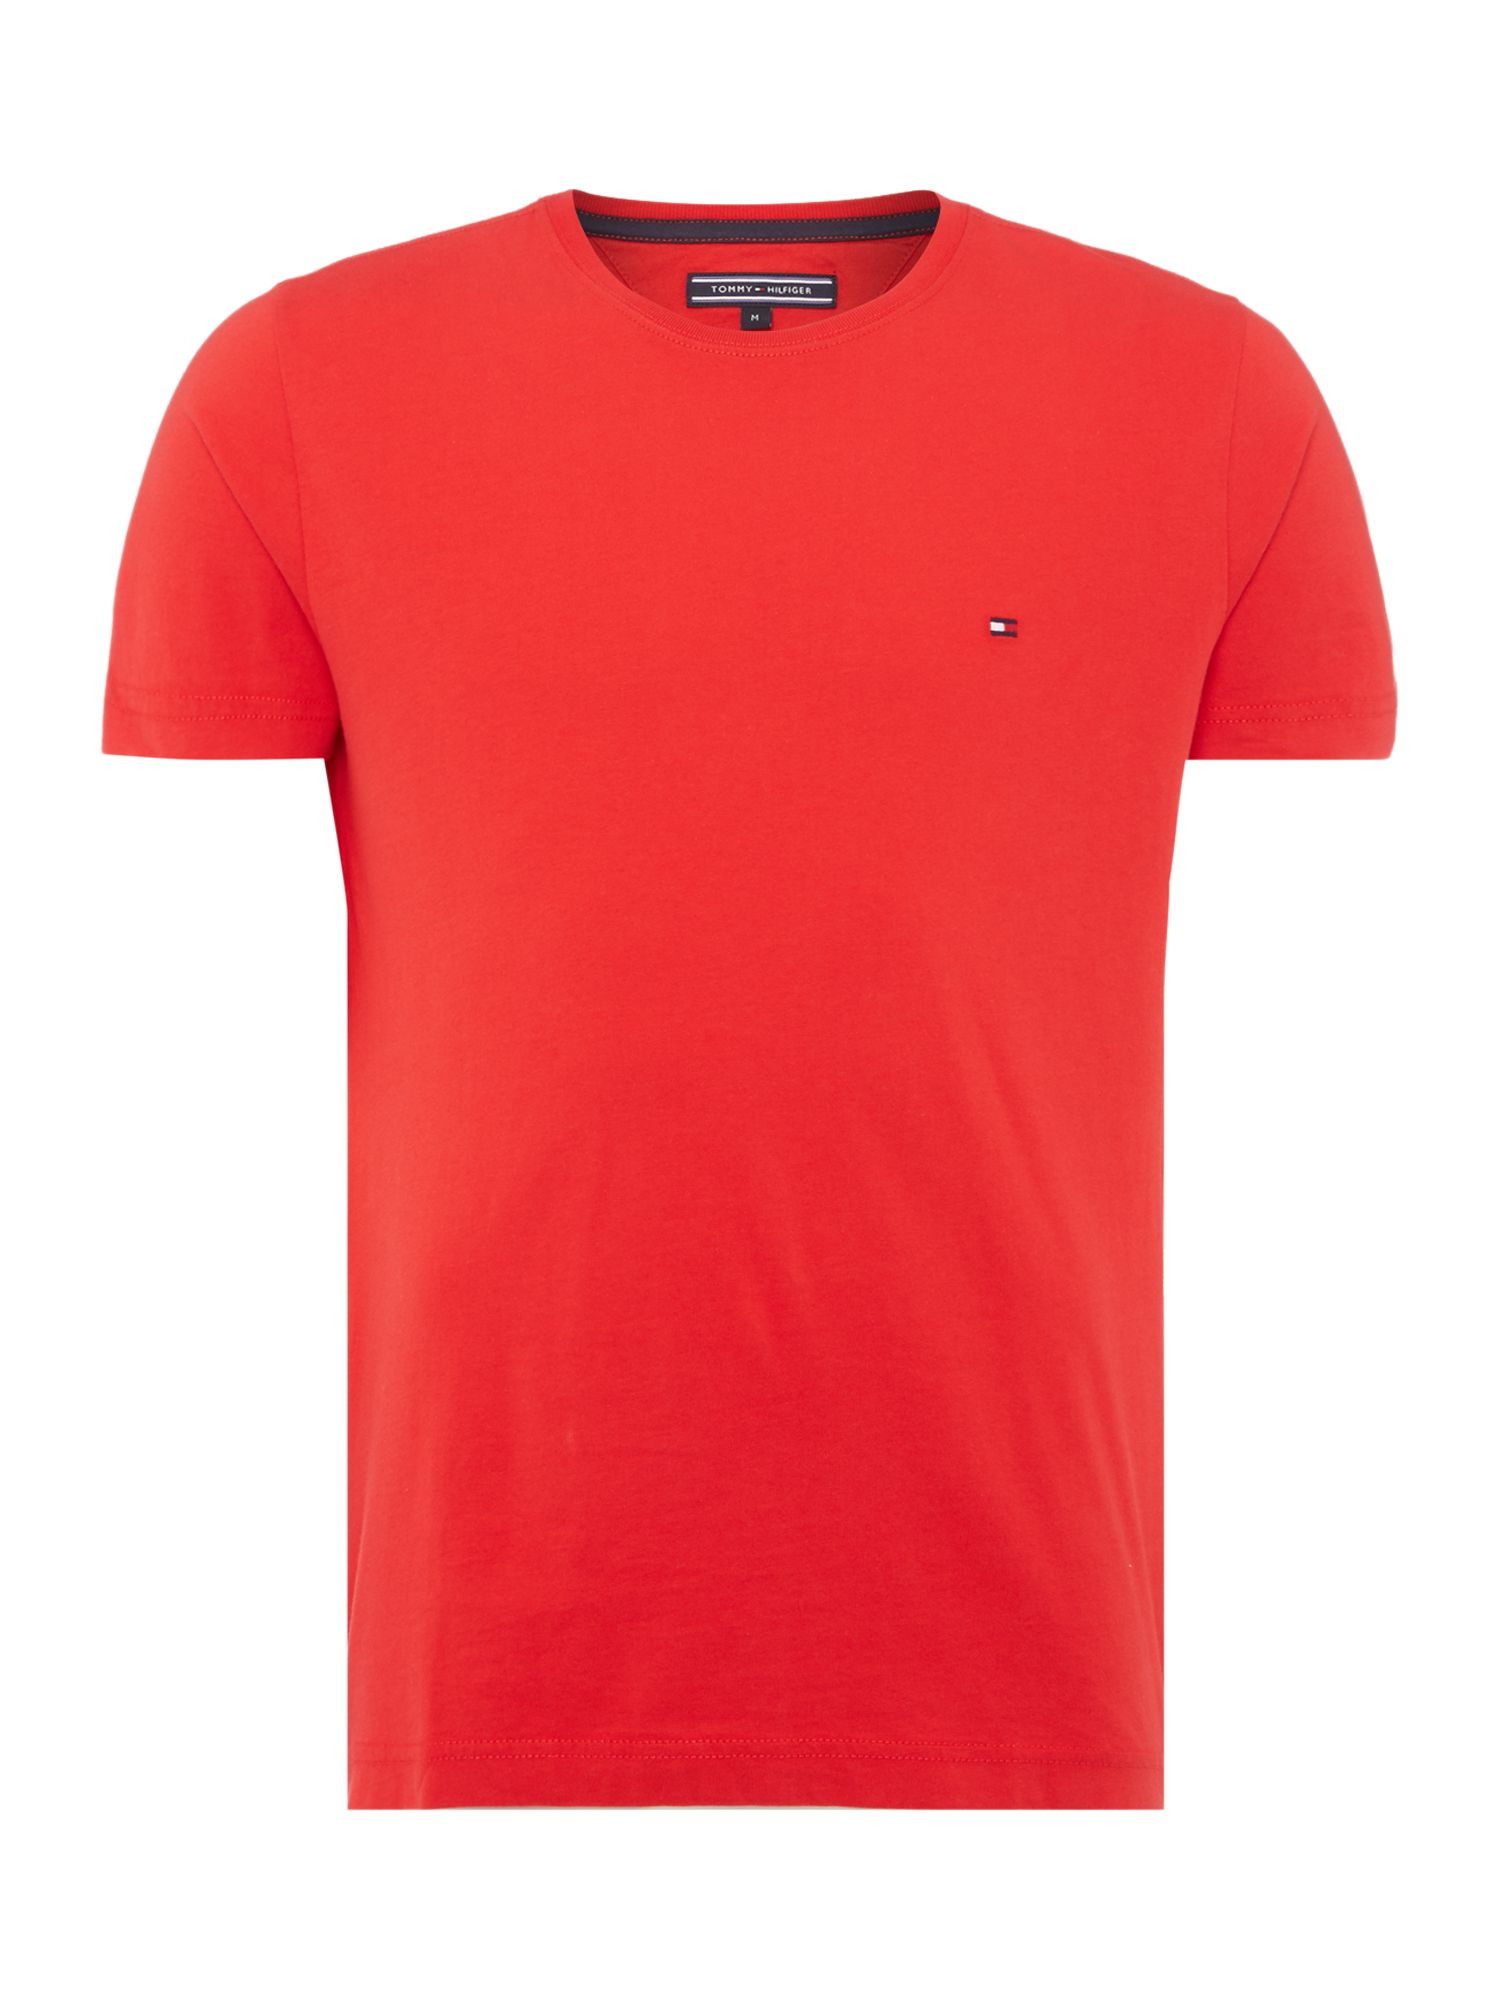 tommy hilfiger flag plain crew neck regular fit t shirt in red for men. Black Bedroom Furniture Sets. Home Design Ideas